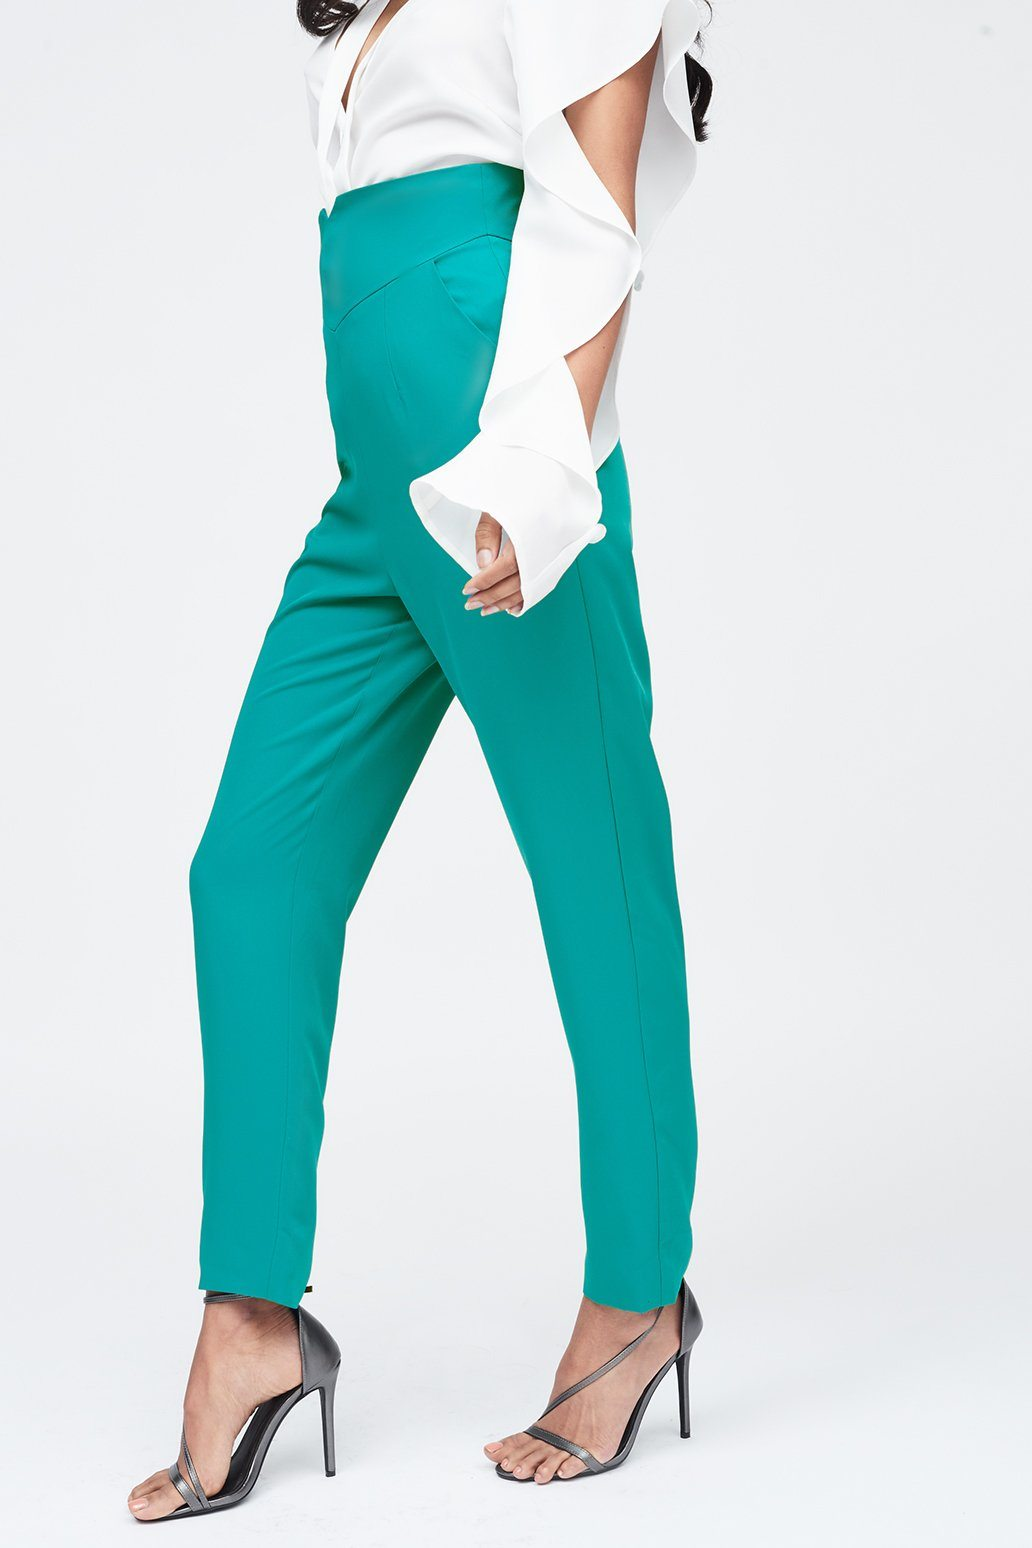 Notched Waistband Tailored Trouser in Jade Green